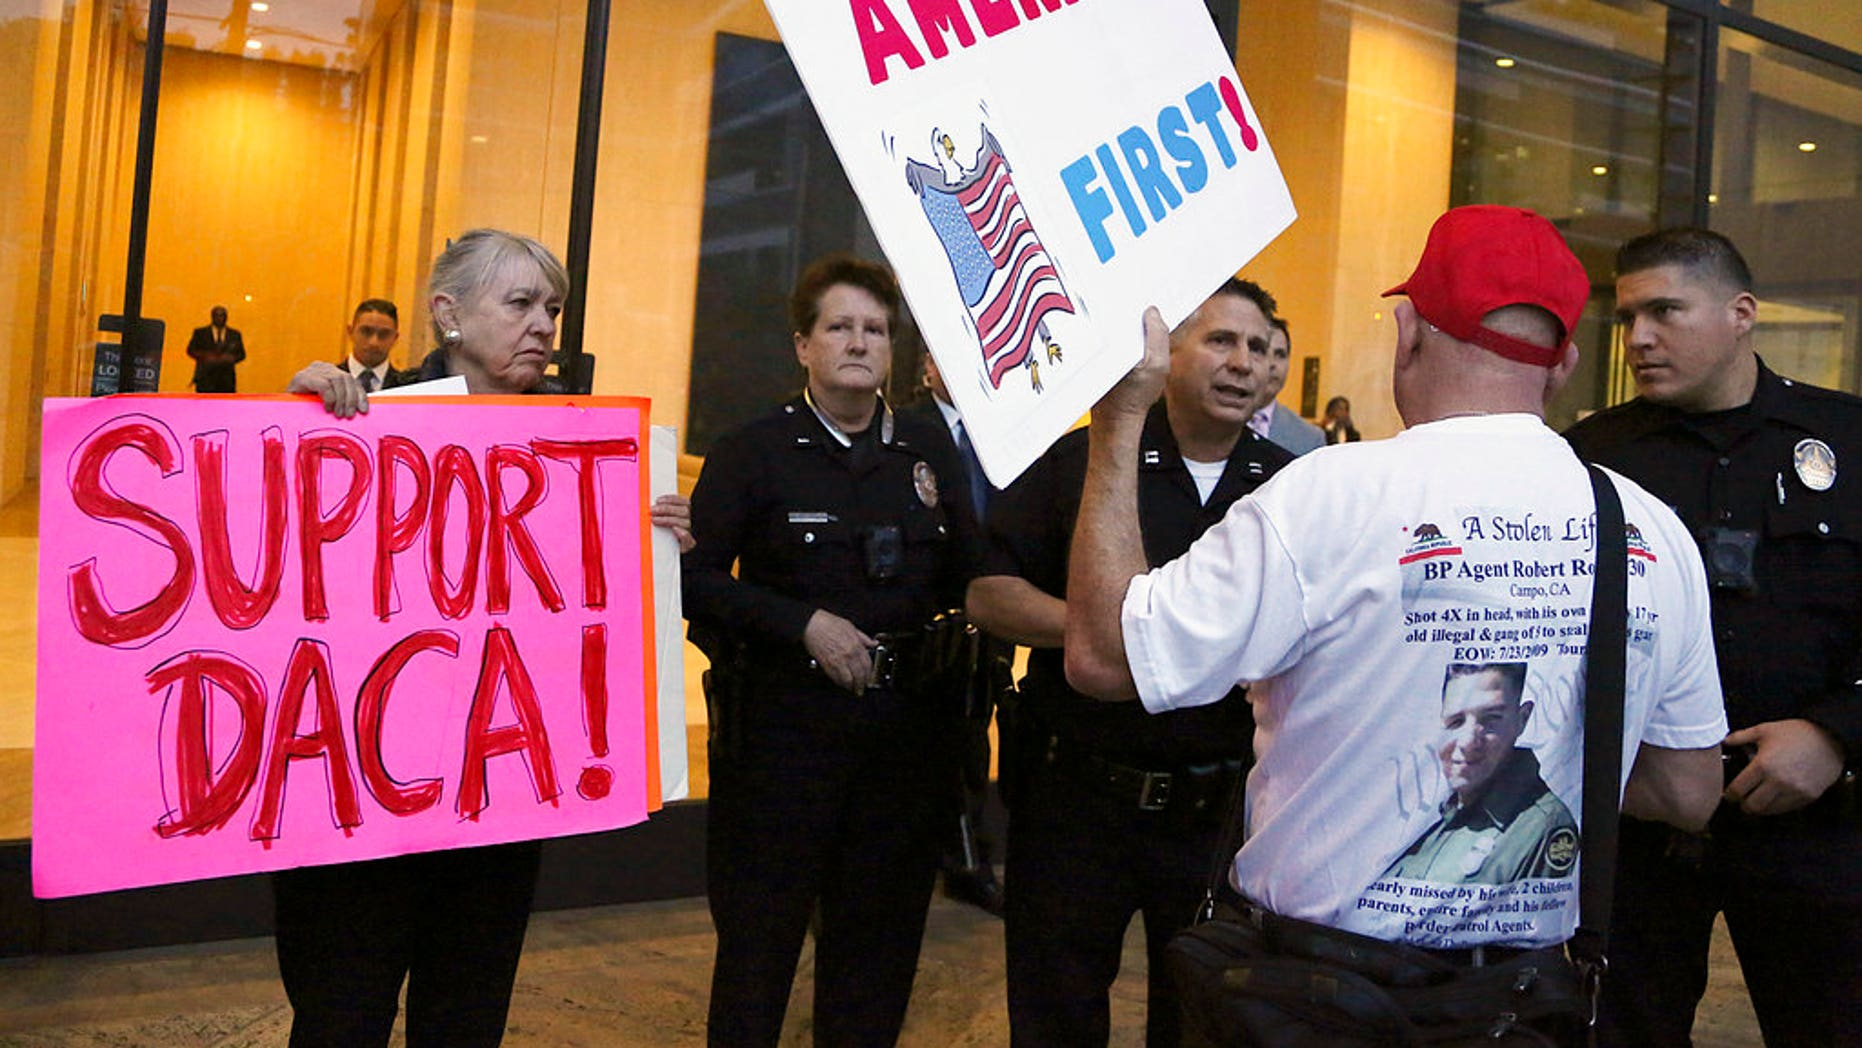 A supporter of President Donald Trump challenges police officers and a Deferred Action for Childhood Arrivals (DACA) program during a rally outside the office of California Democratic Sen. Dianne Feinstein in Los Angeles, Wednesday, Jan. 3, 2018. (AP Photo/Reed Saxon)